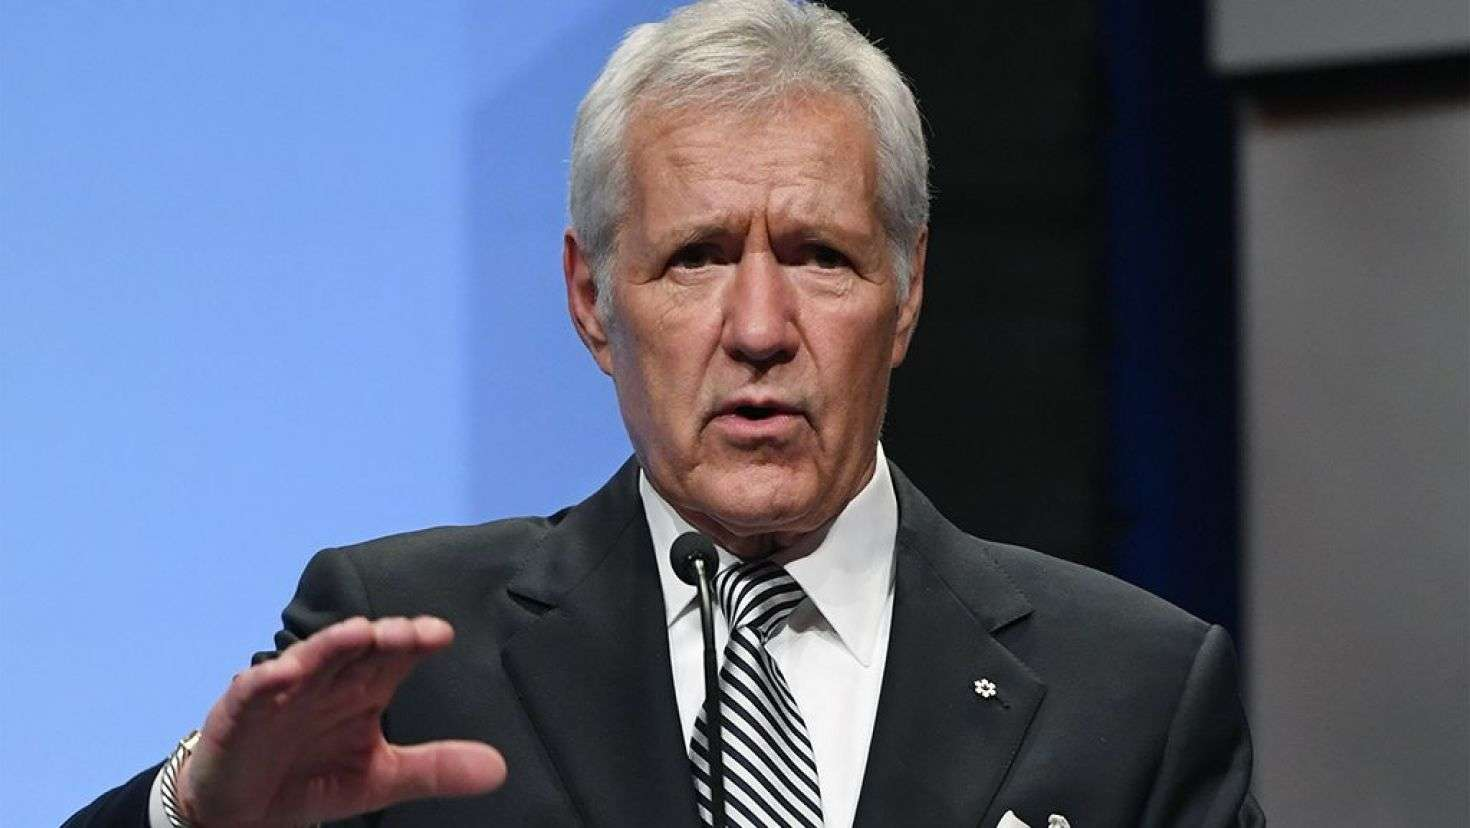 Trebek has crawled into the hearts of viewers everywhere. Image credit: Getty/GlobalImagesUkraine